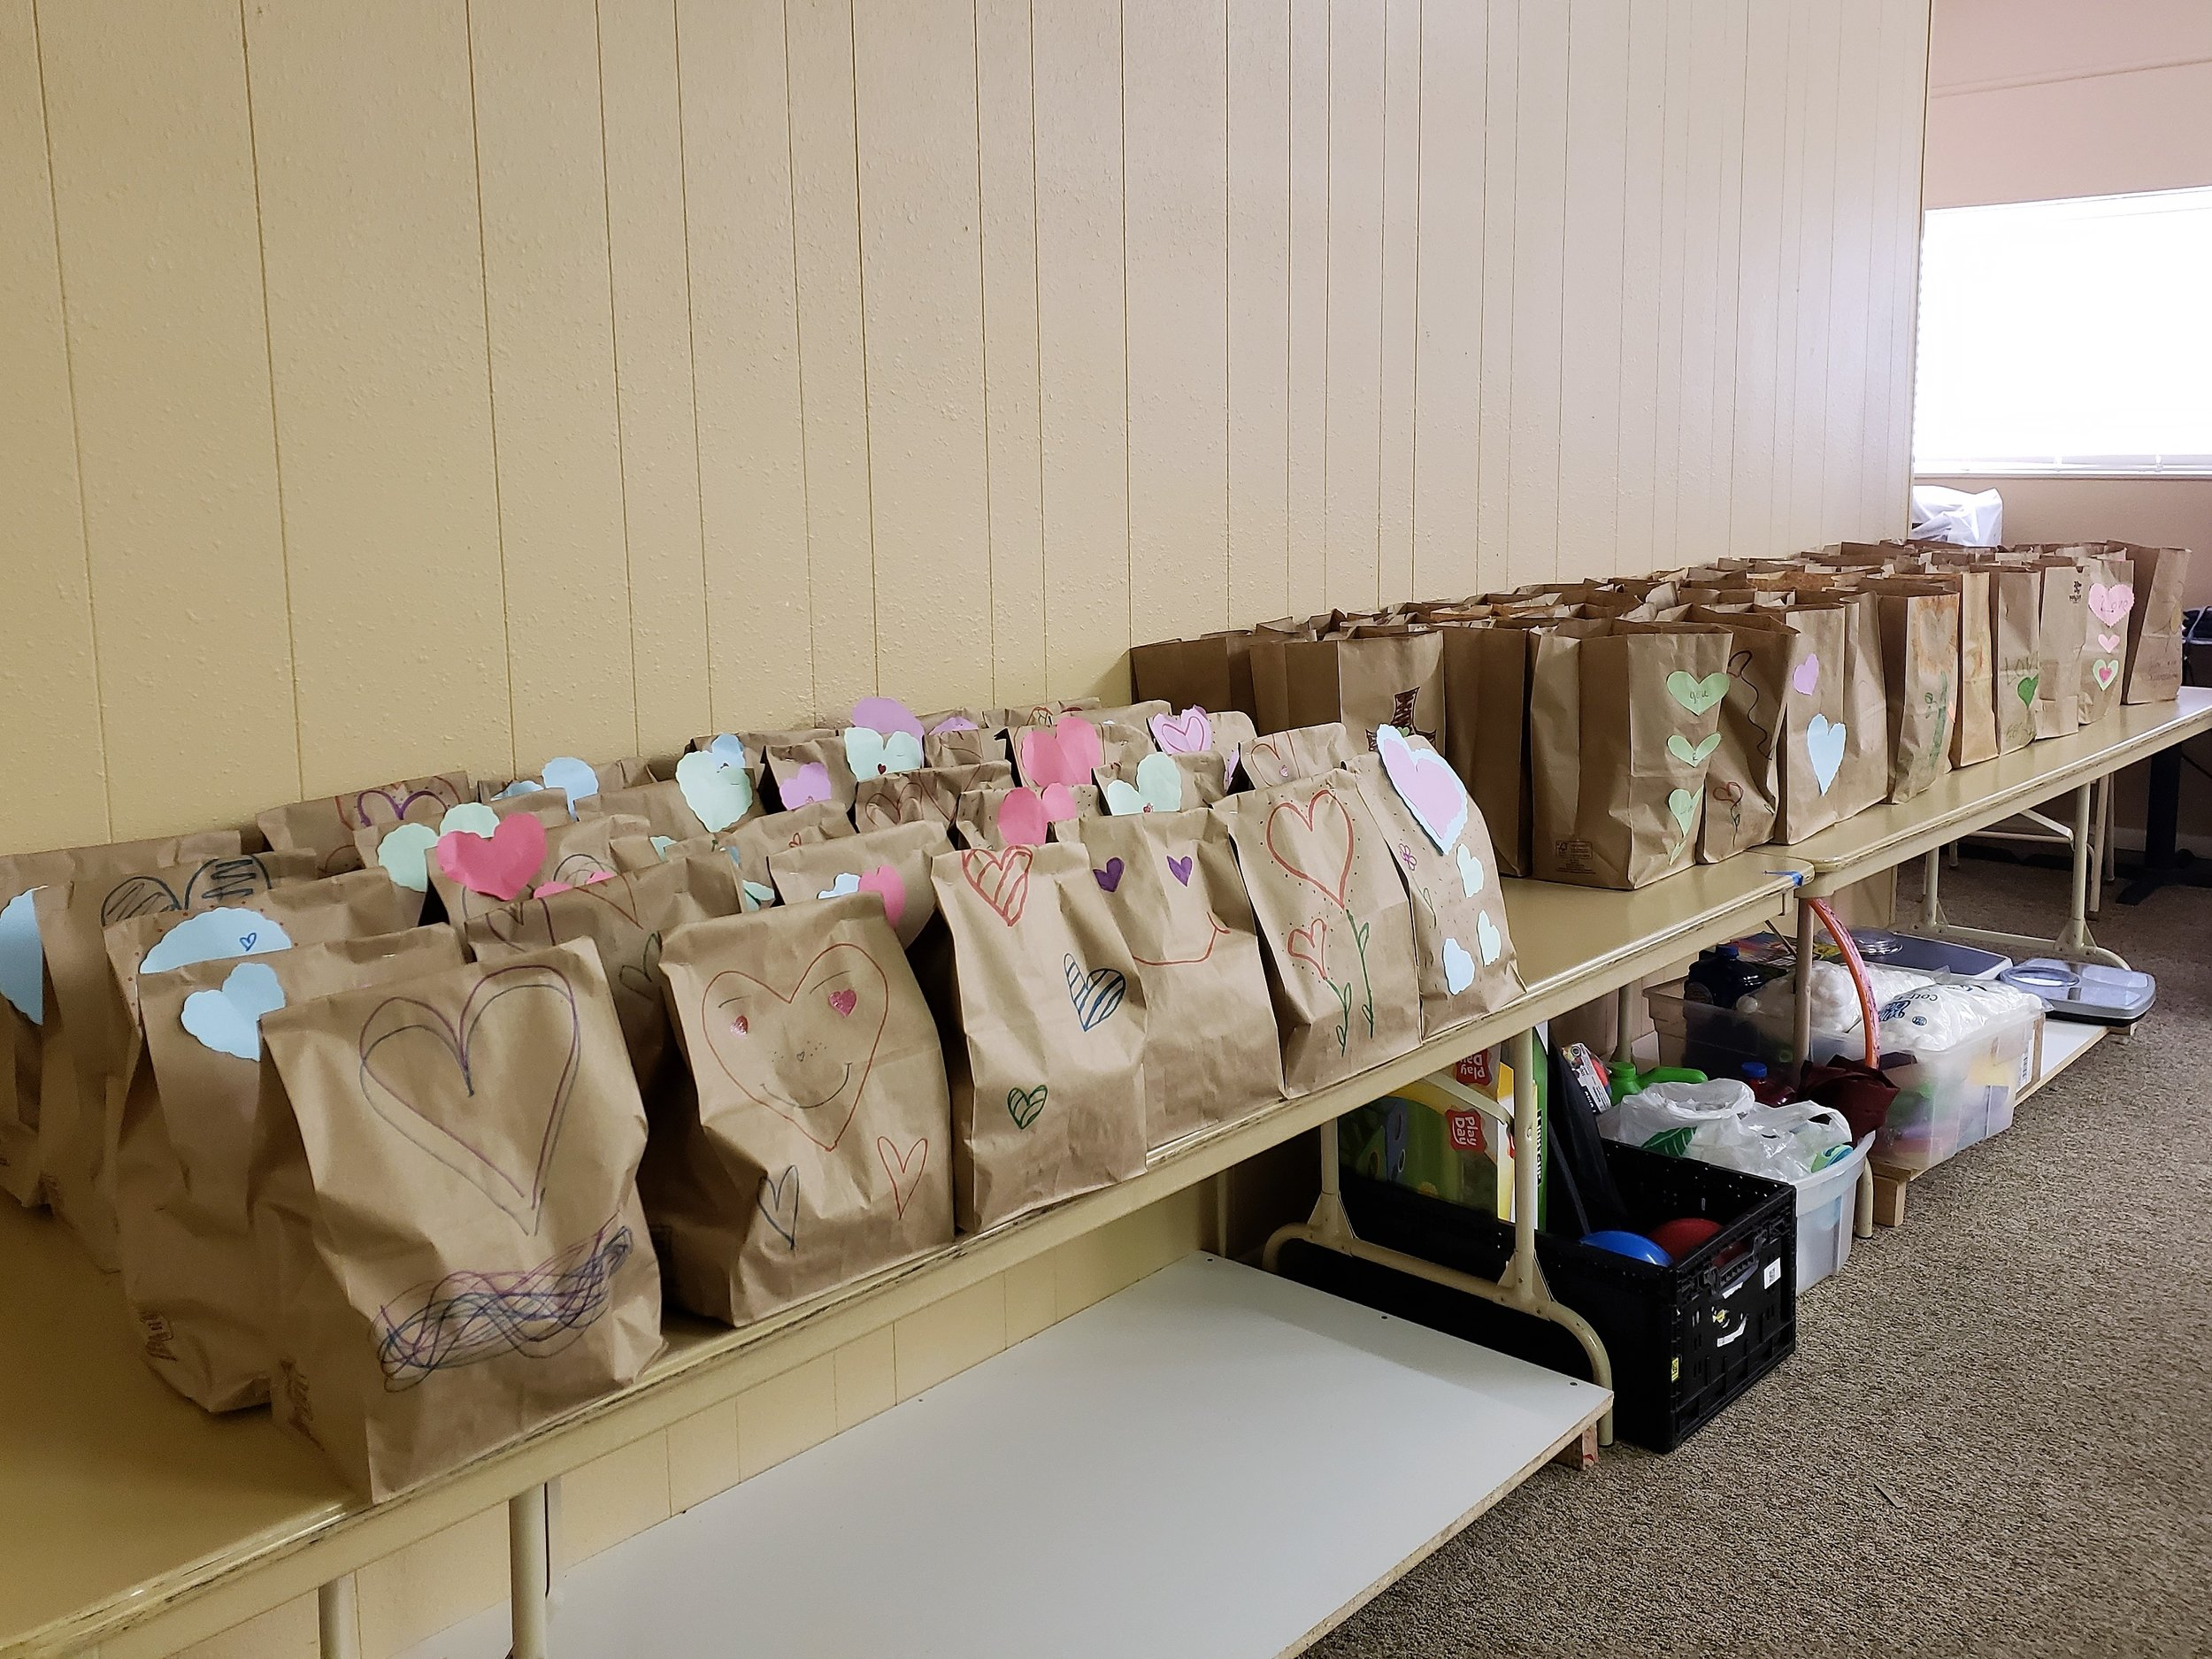 These were just the bags that were filled to hand out right away. There were  so many more  that were decorated to be filled at a later time!